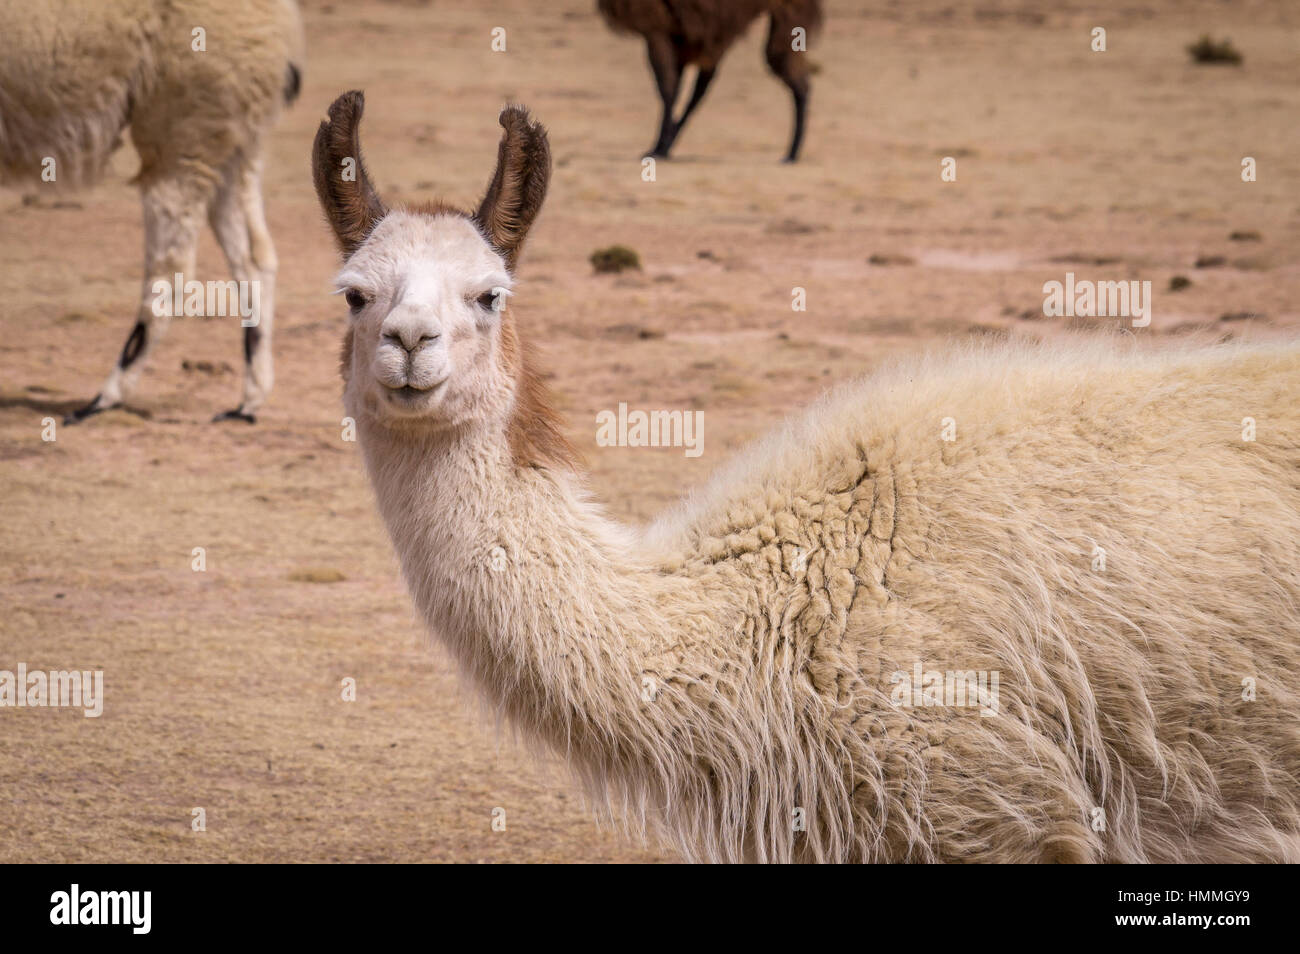 Funny portrait of Lama Alpaca in altiplano - Stock Image